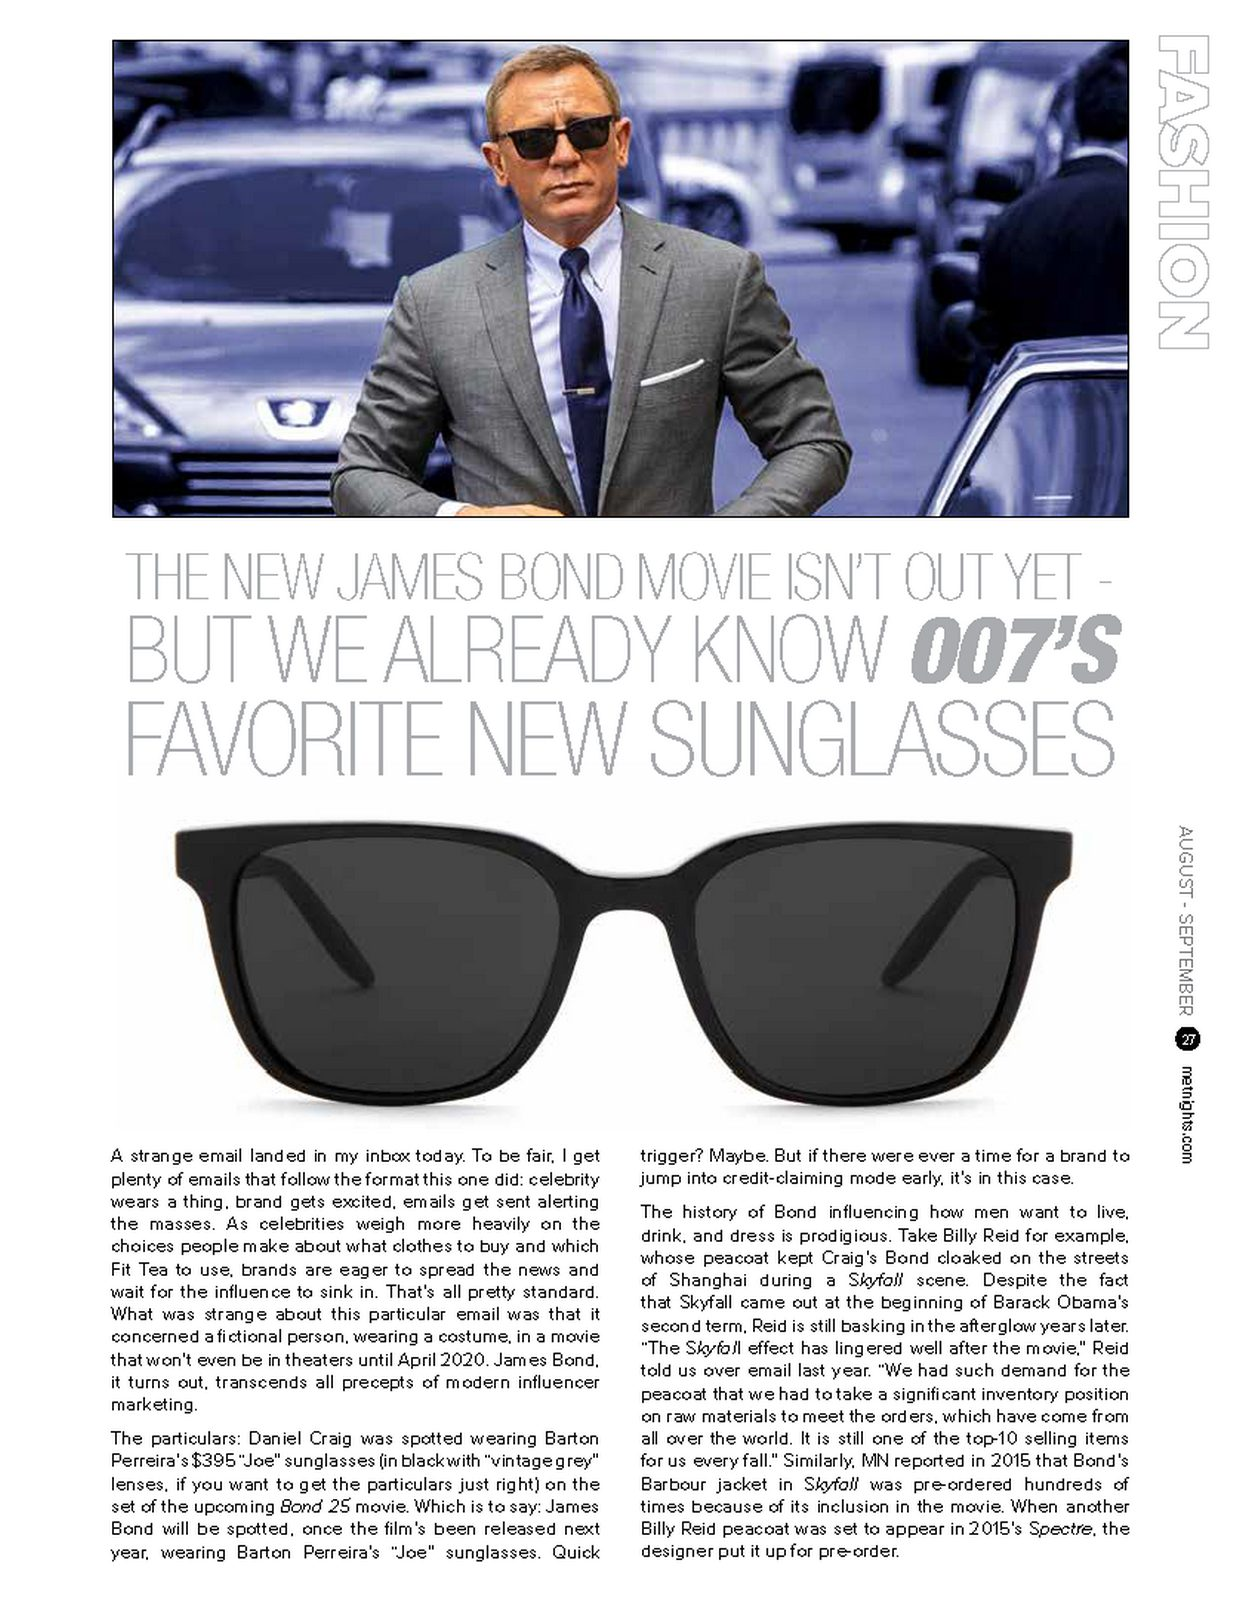 007'S FAVORITE NEW SUNGLASSES